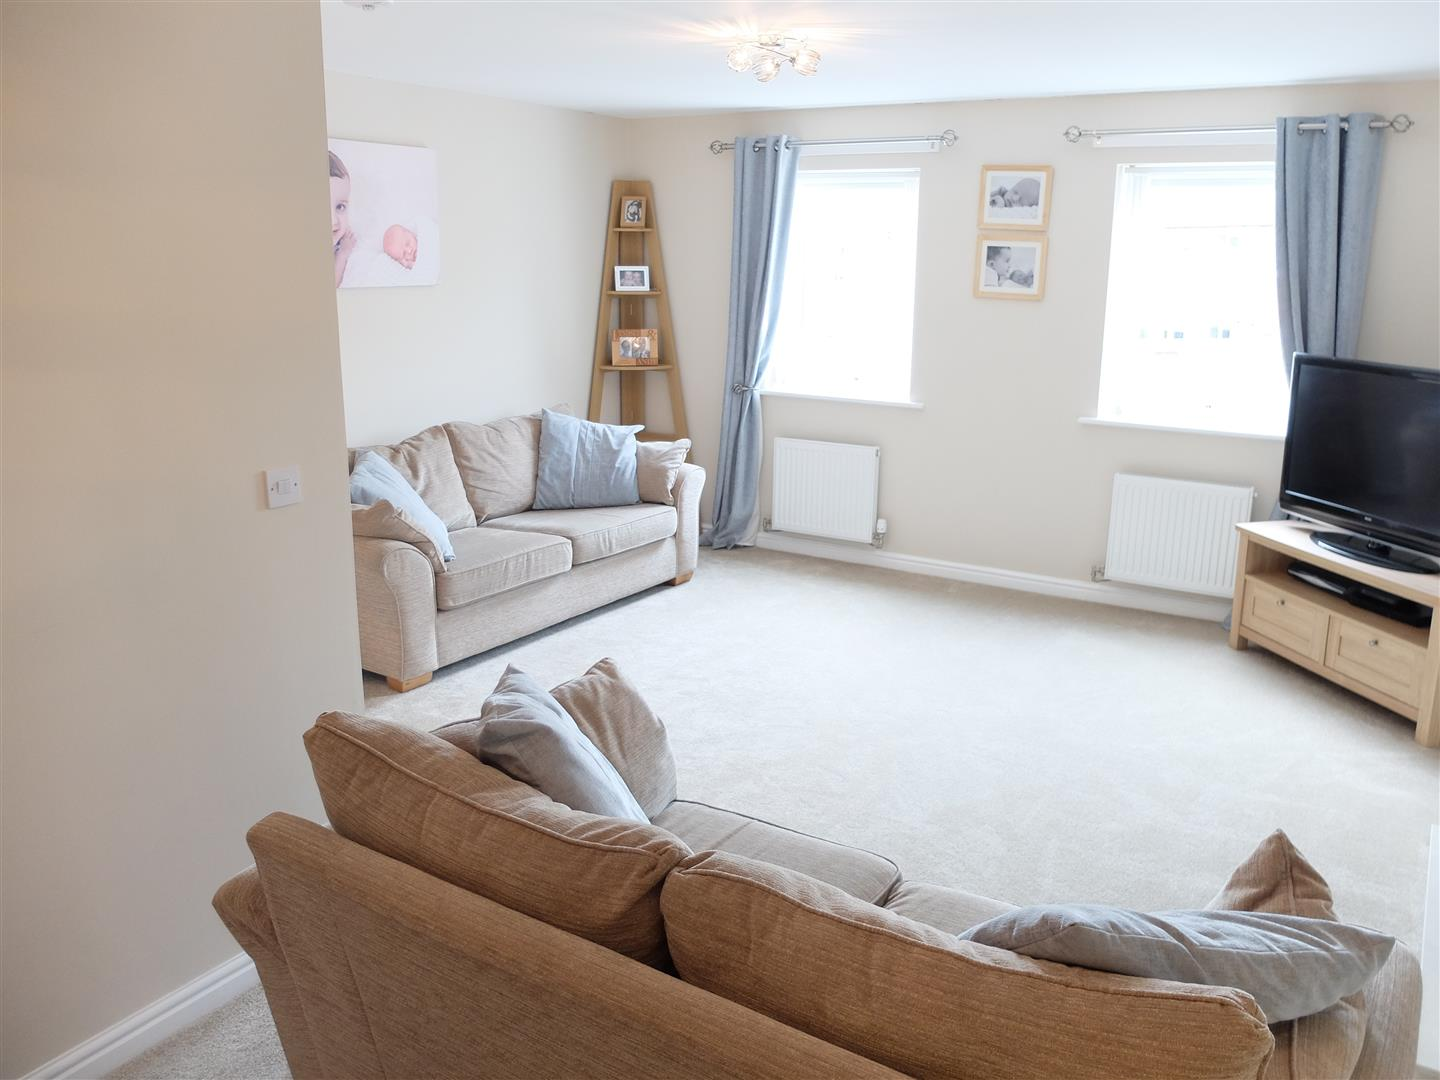 4 Bedrooms House - Townhouse For Sale 16 Tramside Way Carlisle